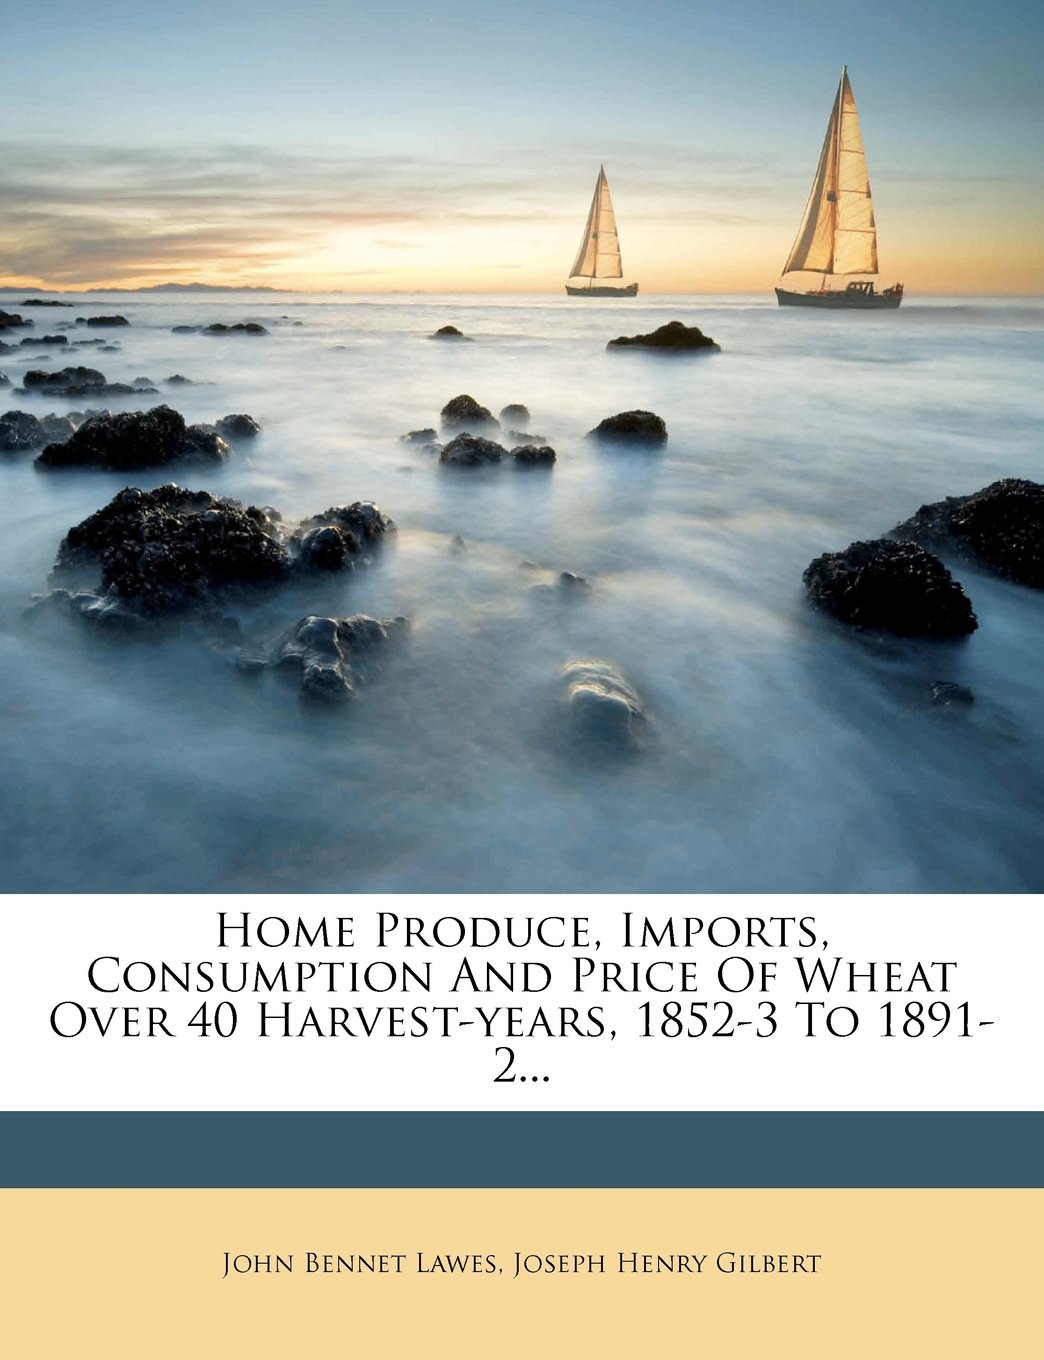 Download Home Produce, Imports, Consumption And Price Of Wheat Over 40 Harvest-years, 1852-3 To 1891-2... pdf